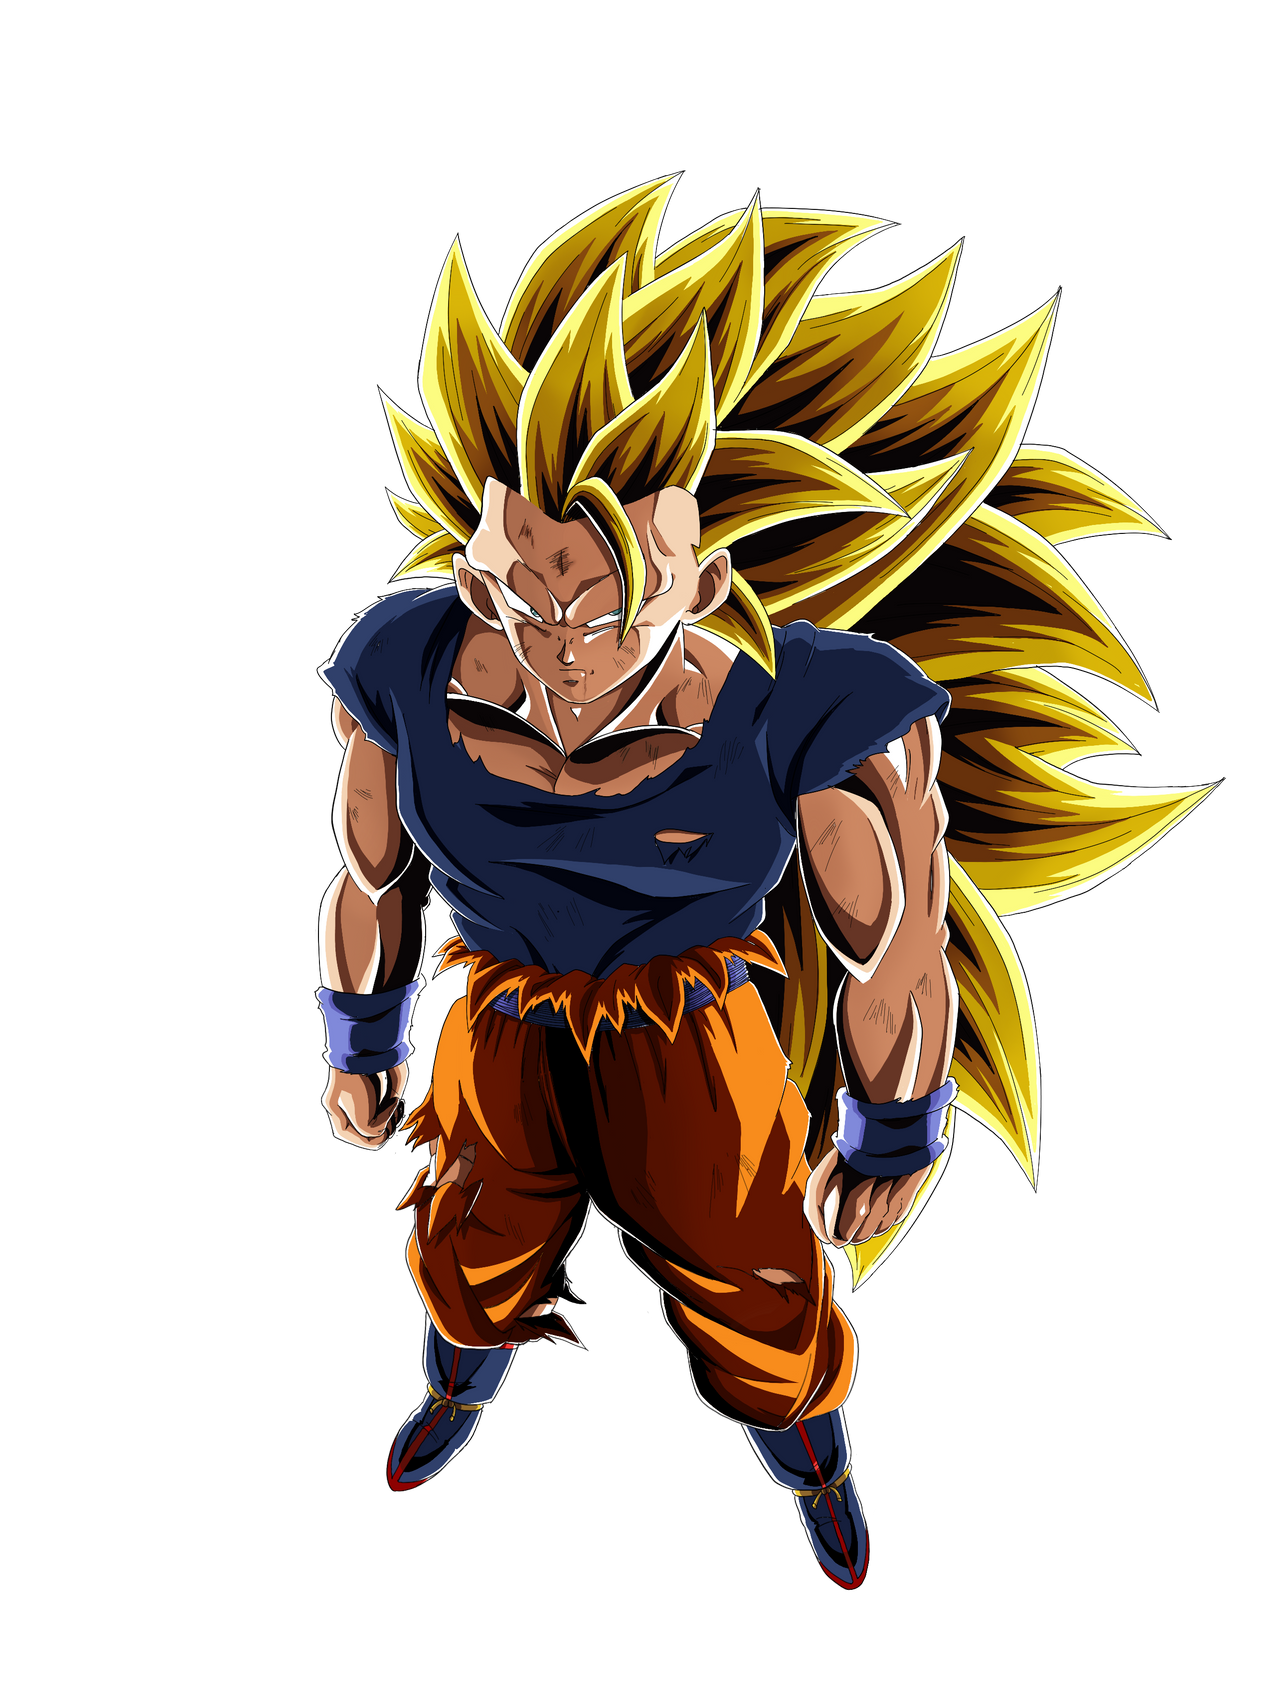 Lr Super Saiyan 3 Goku Render By Dokkandeity On Deviantart